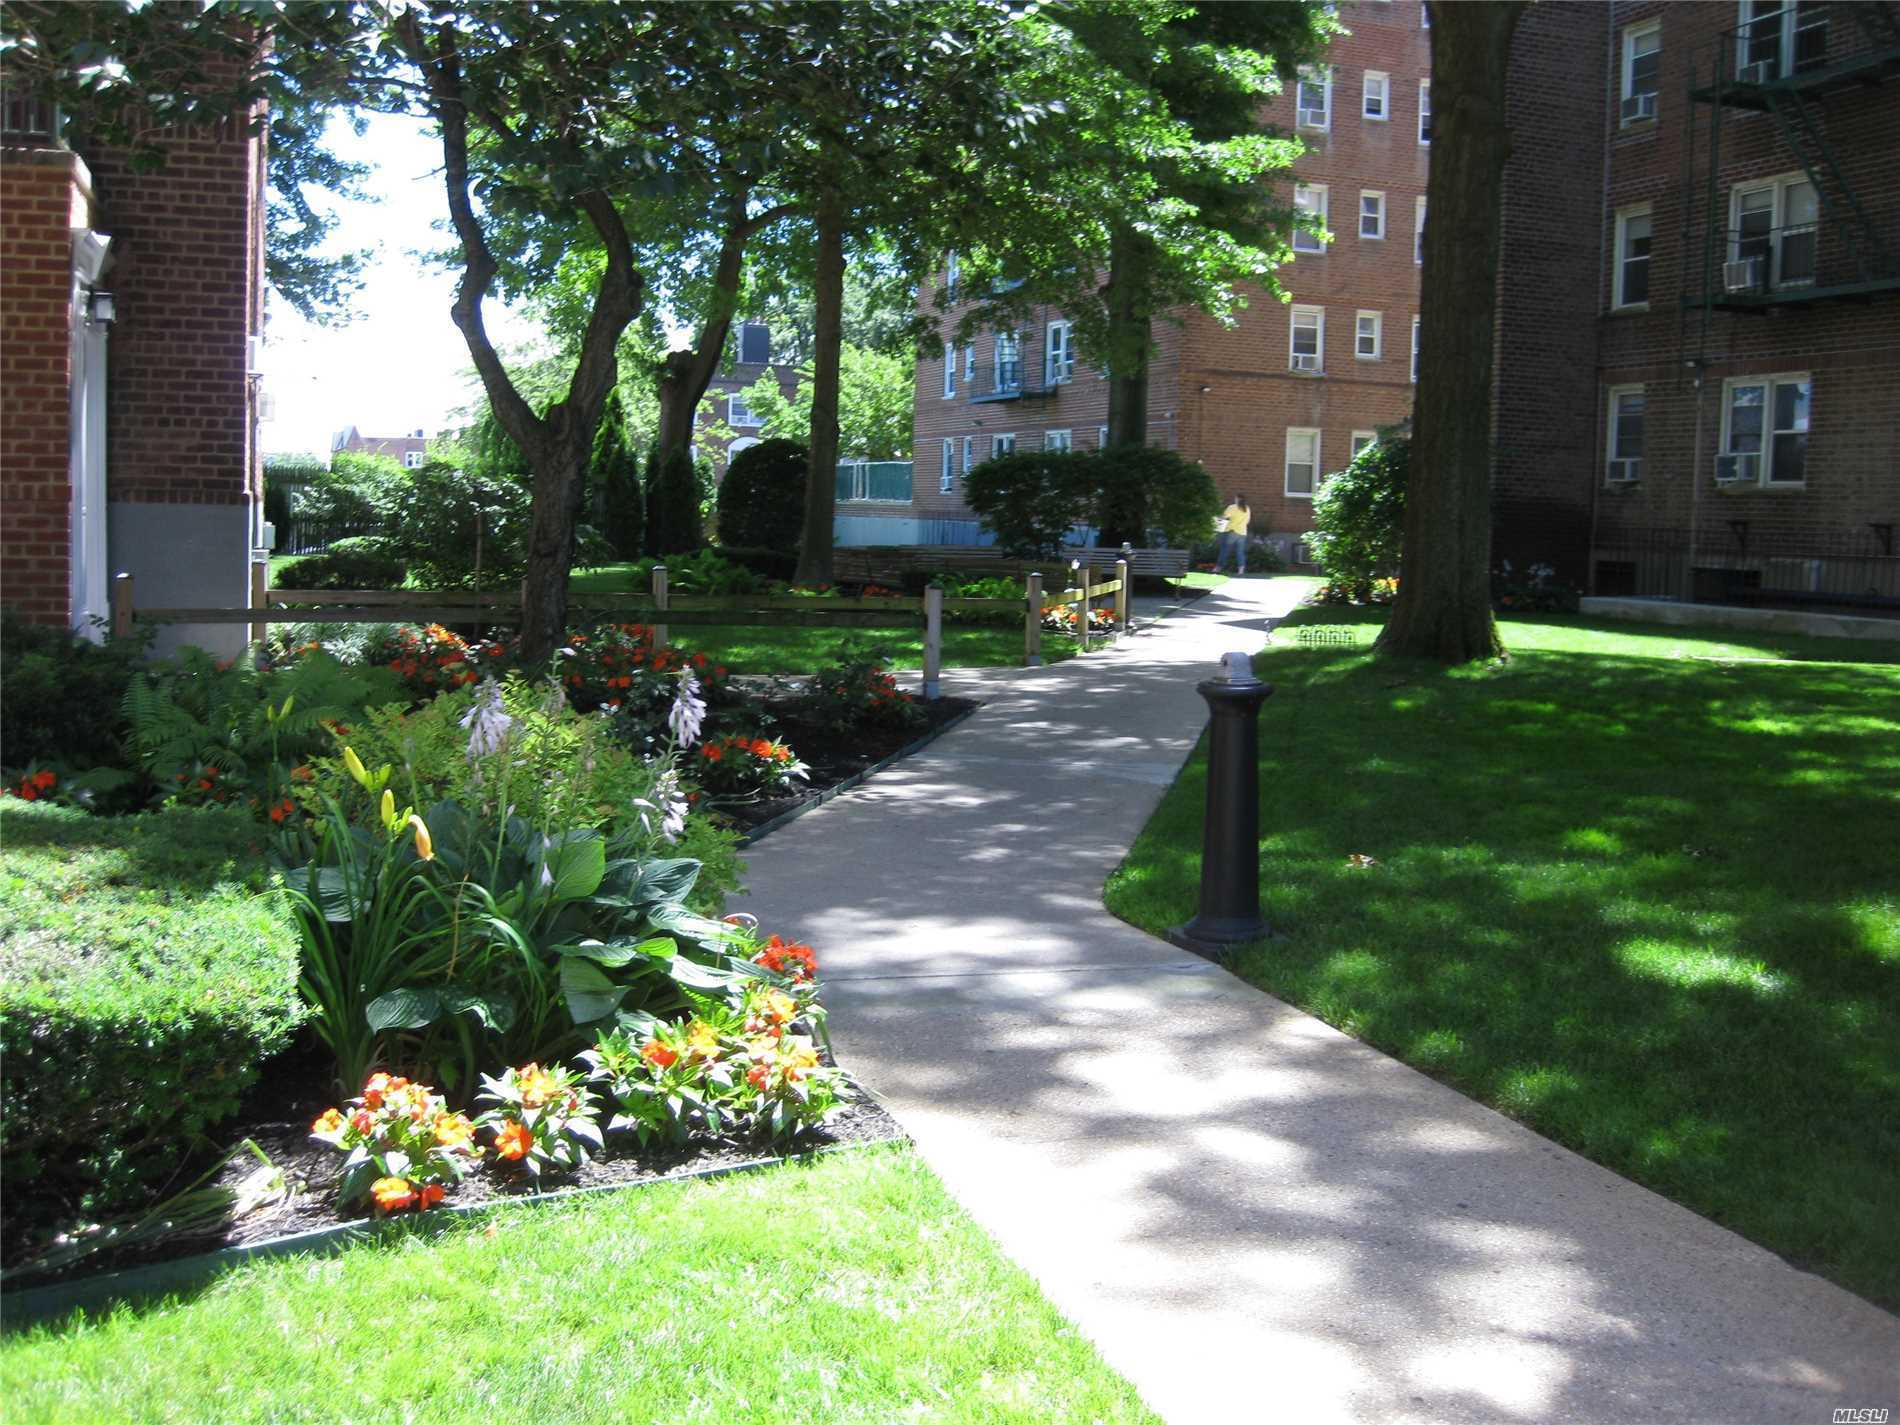 Charming And Pristine Apt!! Complex Offers Quiet, Secure Living With Beautiful, Lush Gardens - Just A Stones Throw From Garden City. One Of The Best Kept Secrets In Nassau County Convenient To Lirr, Stores, Universities, Restaurants, Hospitals. Maintenance Includes Property Taxes, Heat, Water, Sewer, Etc. Ezy Access To Pakways To Li Baches And Upstate Mountains. Has It All! Sorry, No Dogs However.